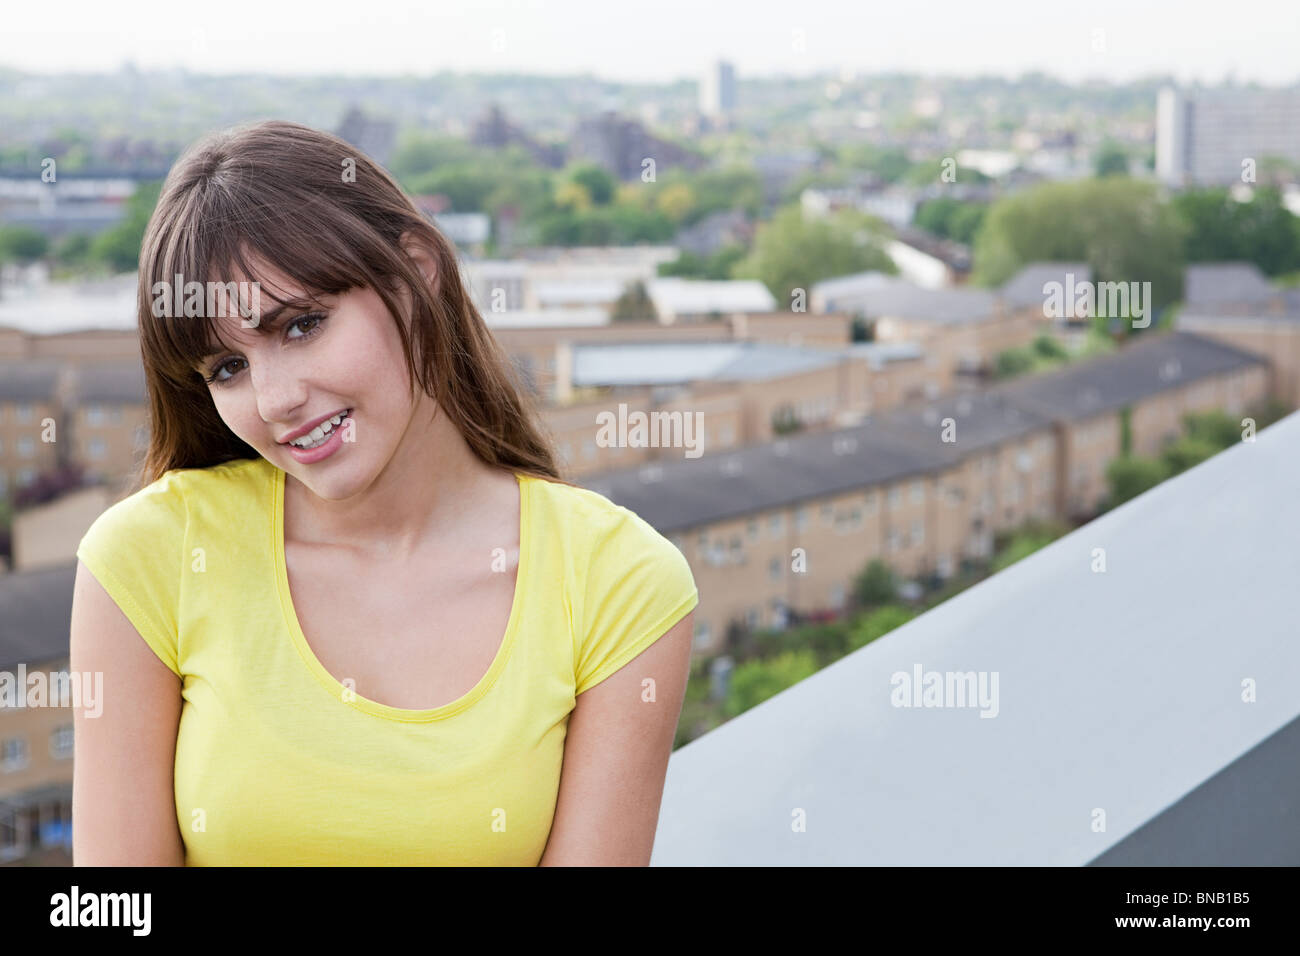 Young woman and urban scene in background - Stock Image